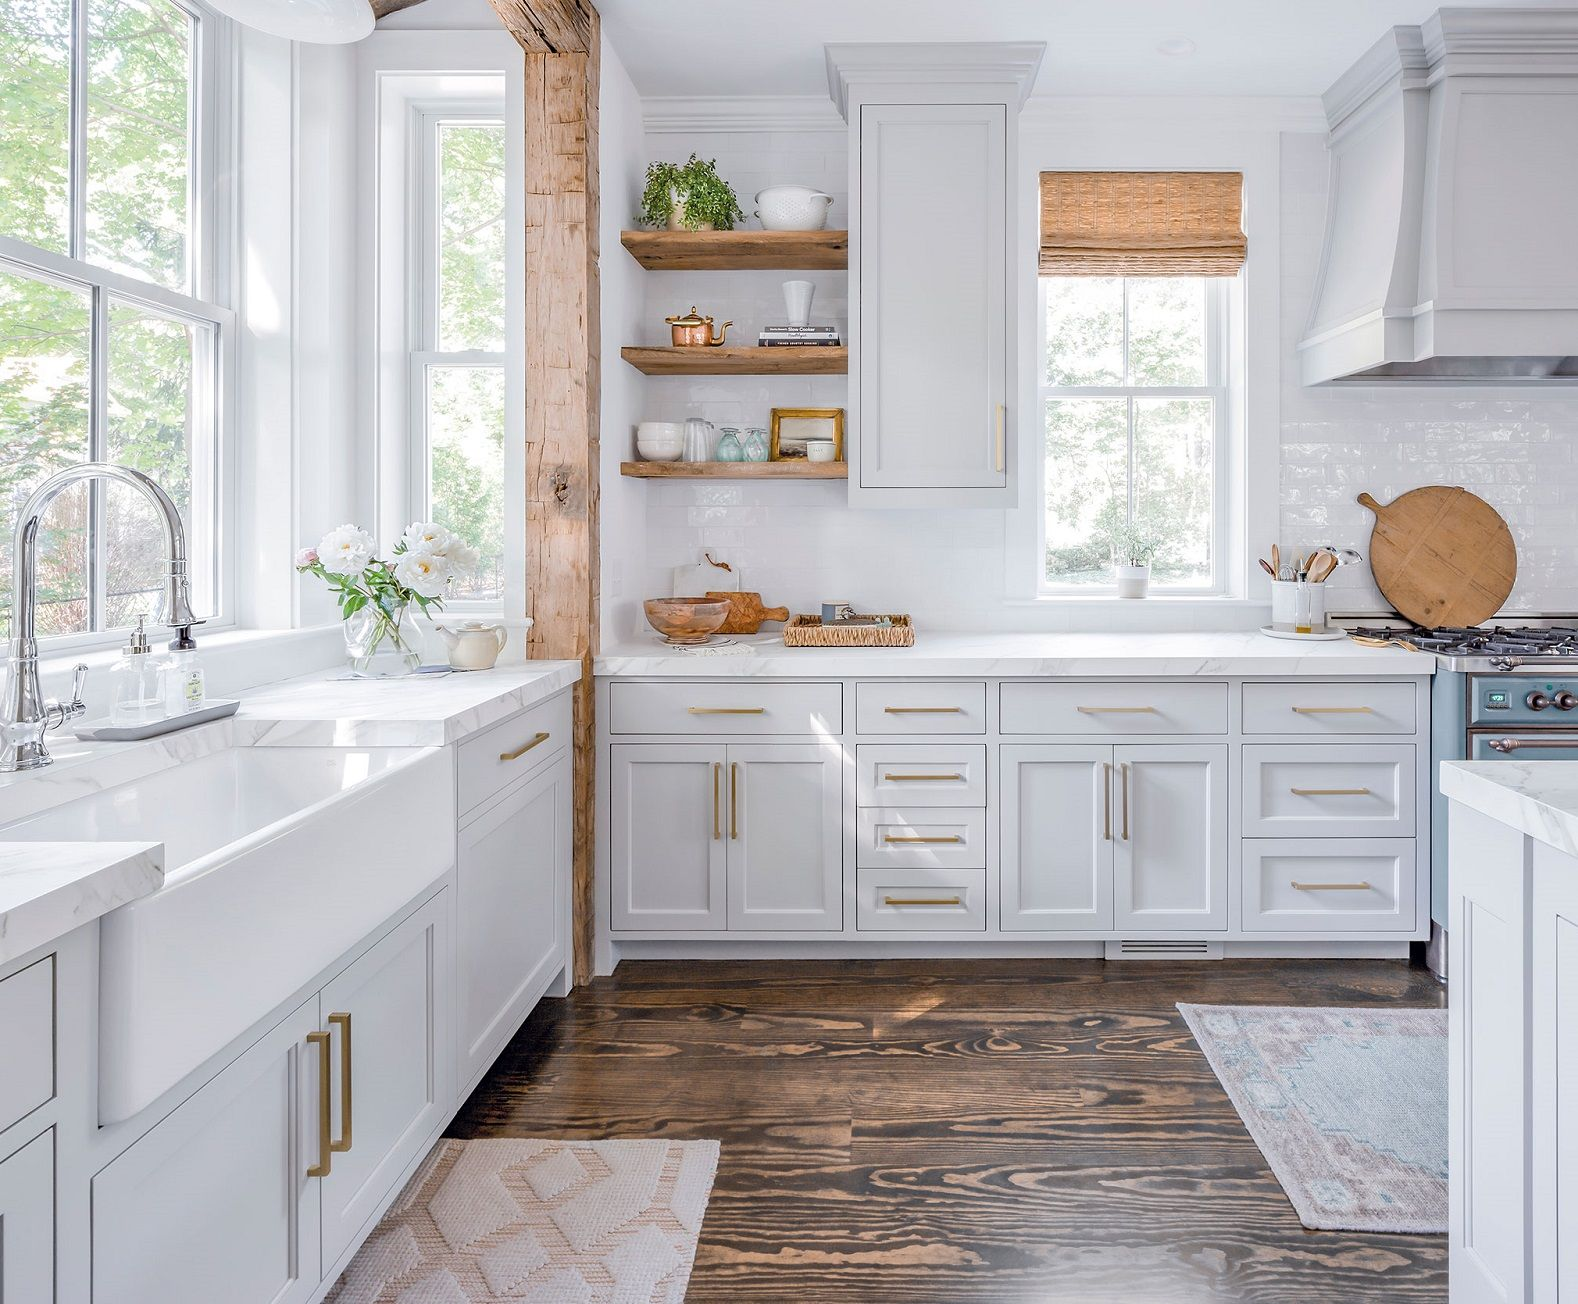 Best Coastal Kitchens Get Beach Themed Kitchens Decor Ideas 2020 White Farmhouse Kitchens Farmhouse Kitchen Design Modern Farmhouse Kitchens